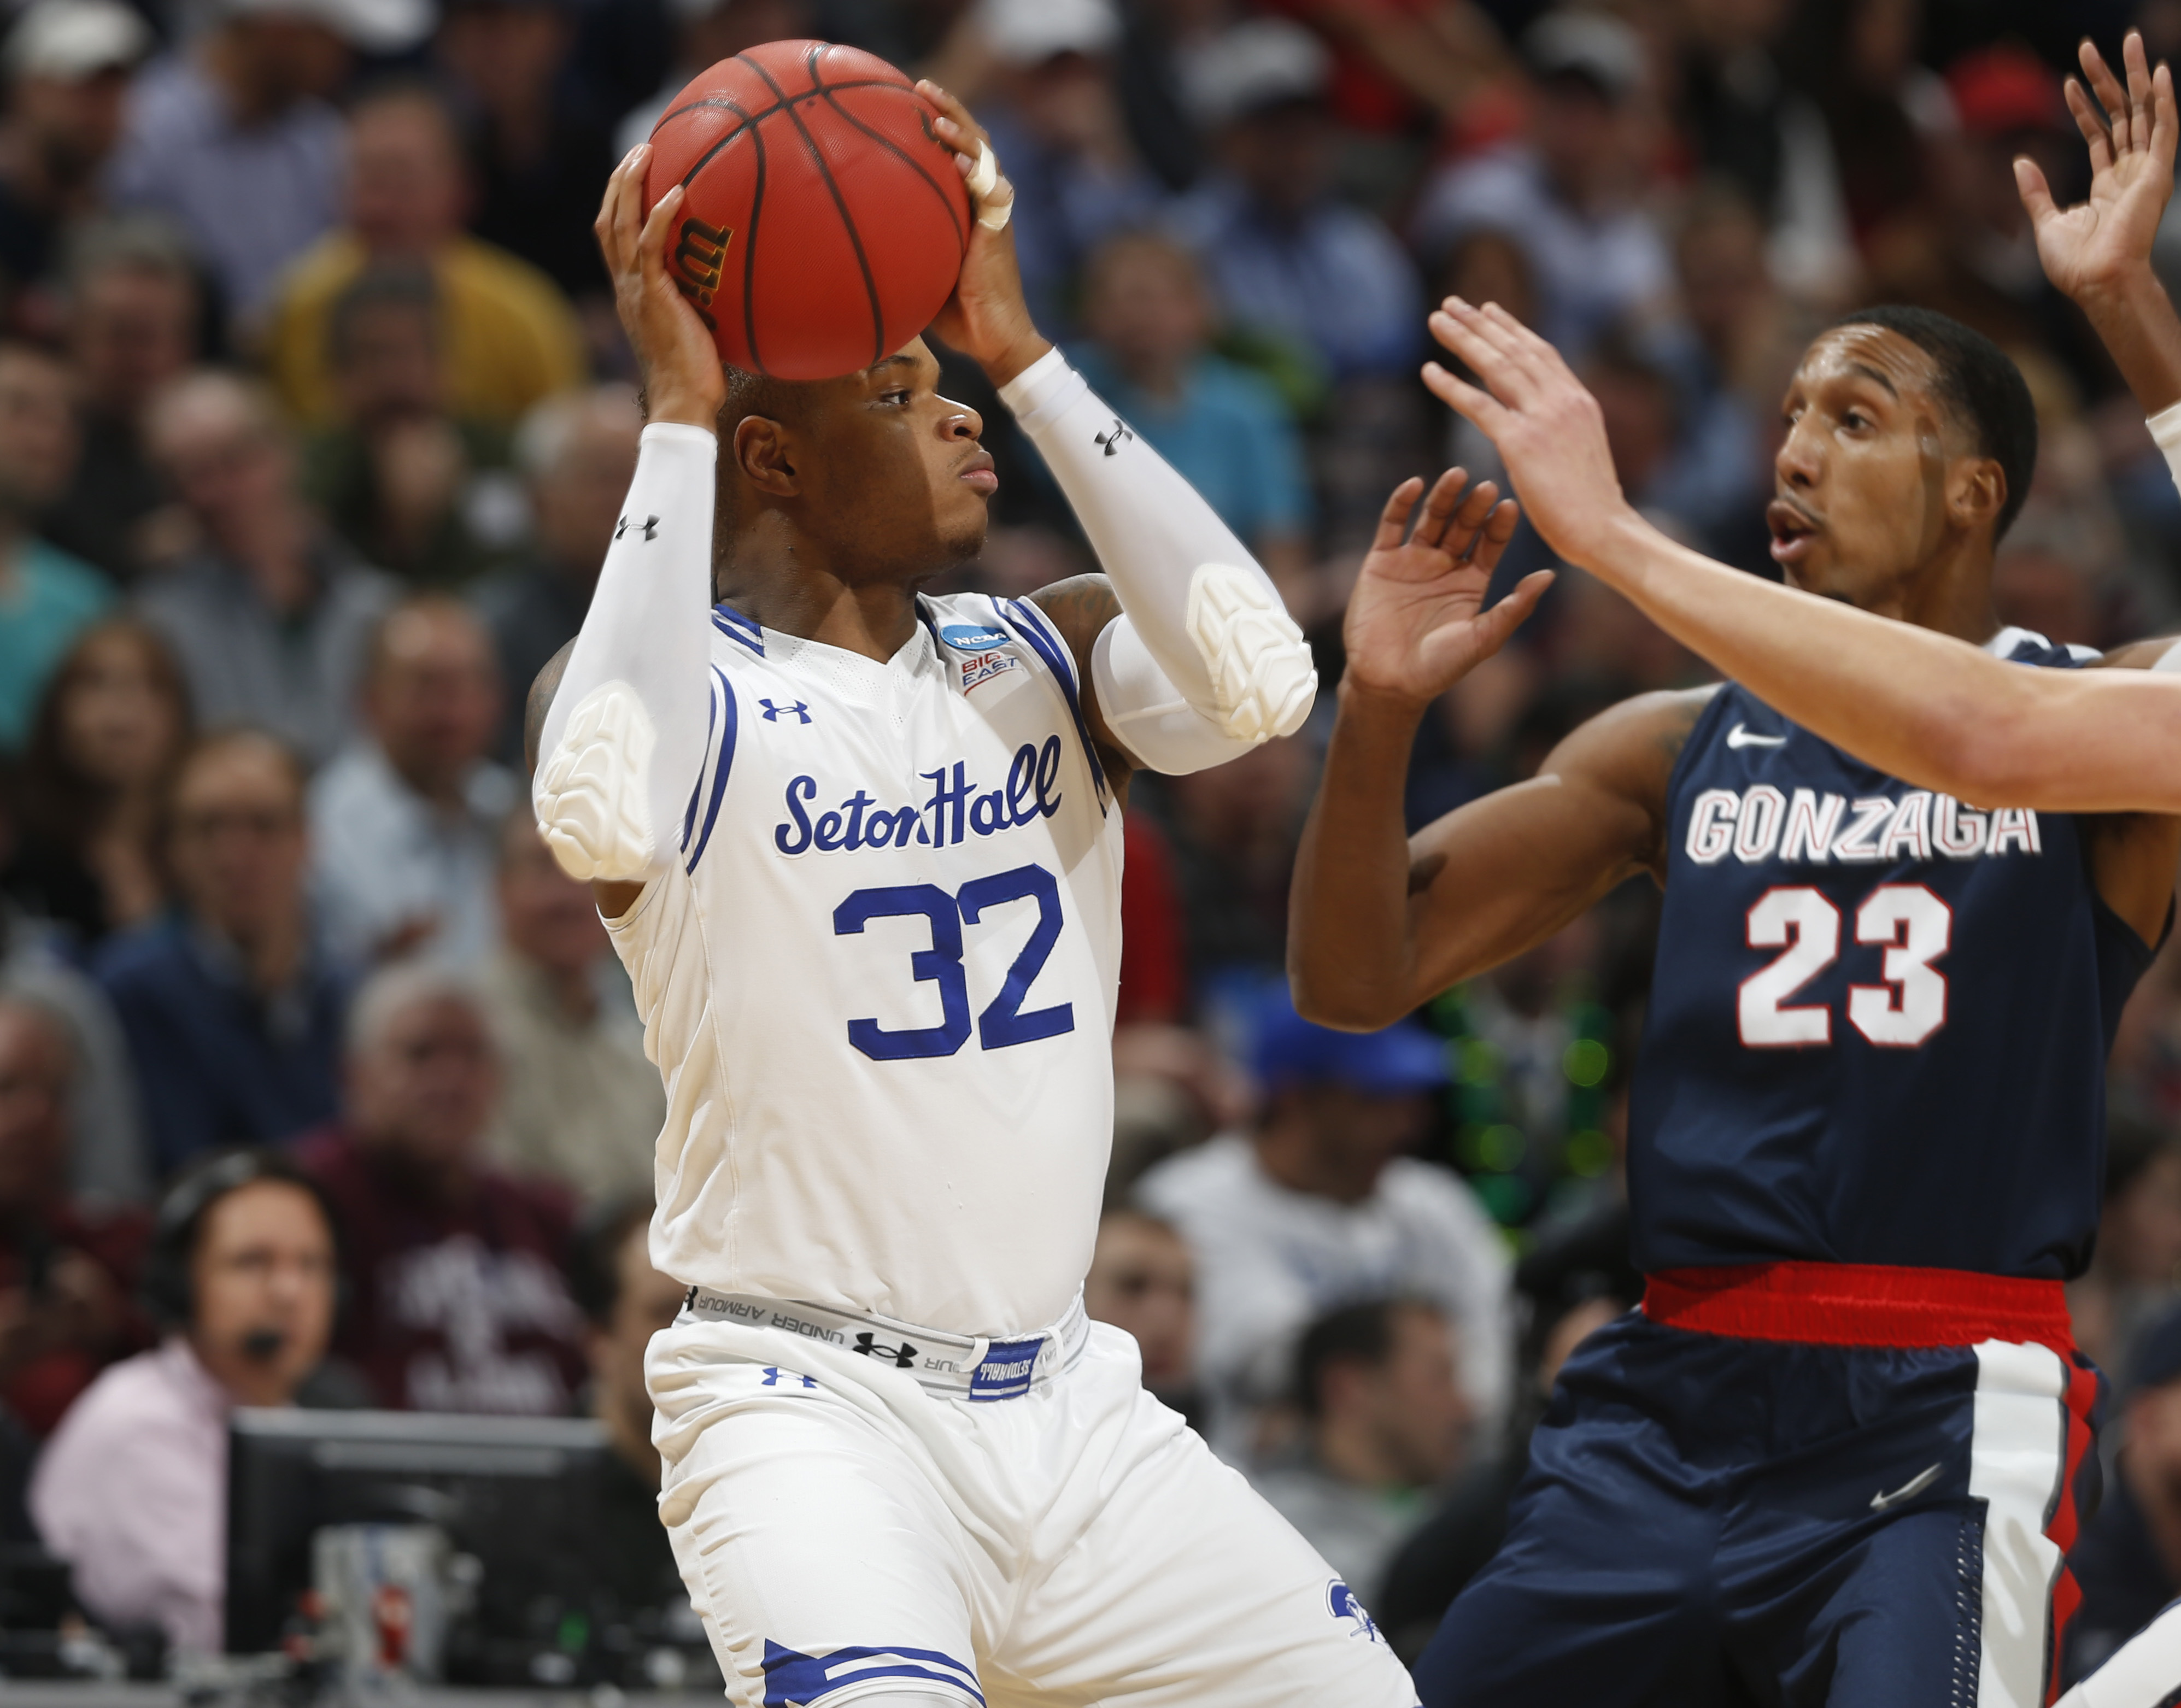 Seton Hall guard Derrick Gordon, left, looks to pass the ball as Gonzaga guard Eric McClellan defends in the first half of a first-round men's college basketball game Thursday, March 17, 2016, in the NCAA Tournament in Denver. (AP Photo/David Zalubowski)